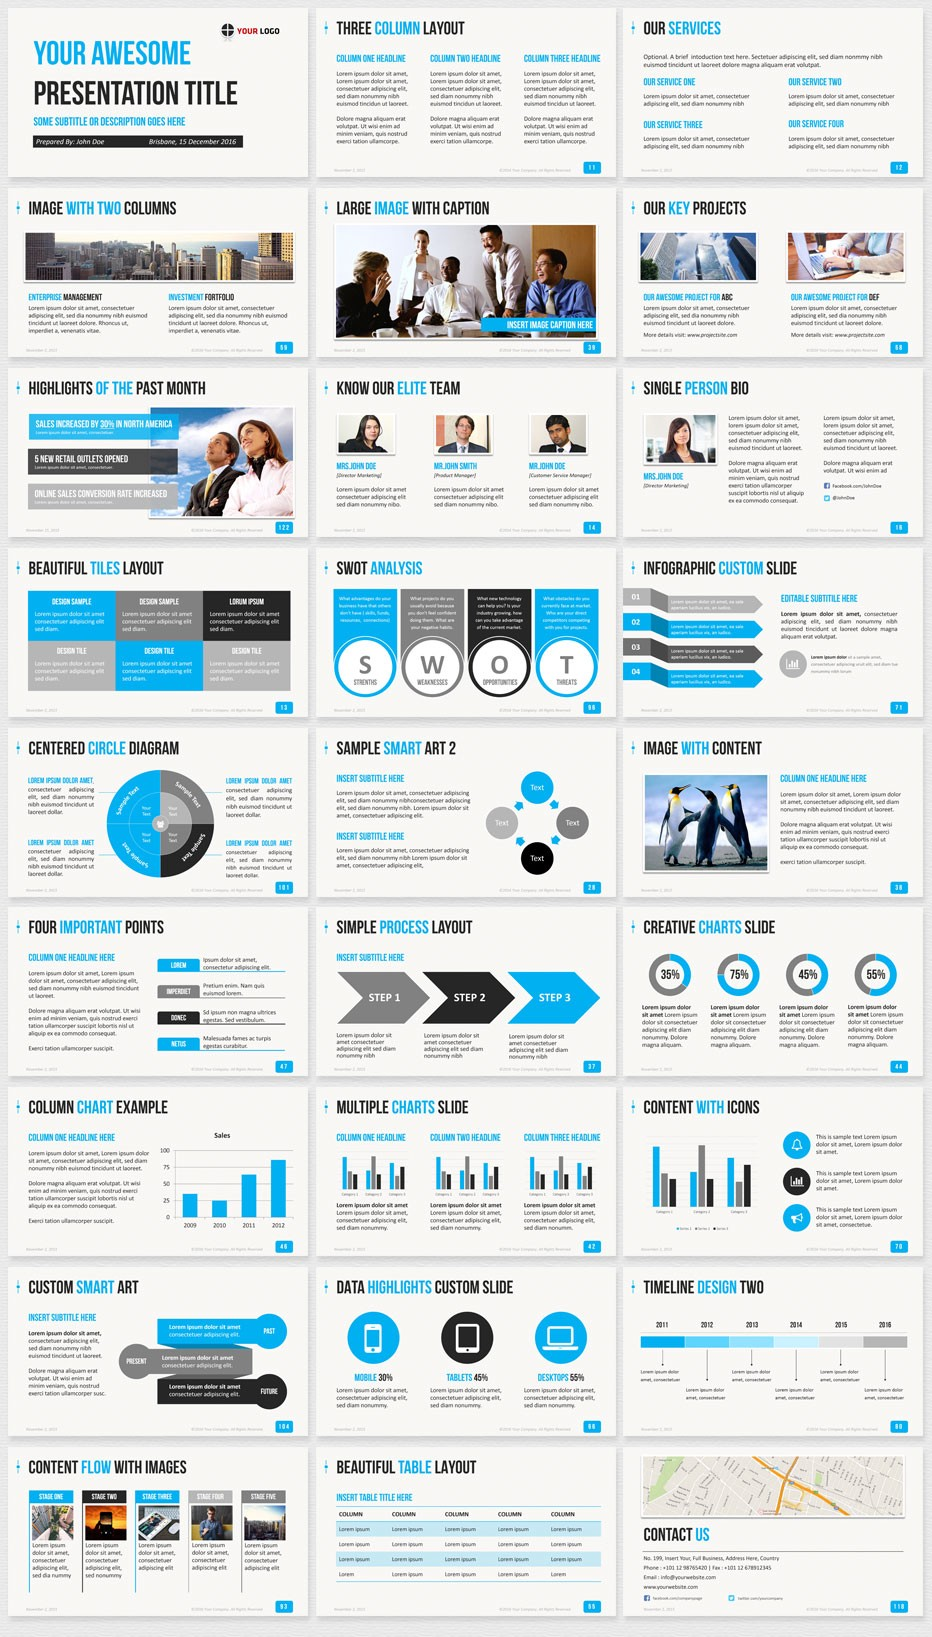 professional presentation templates or free powerpoint themes what